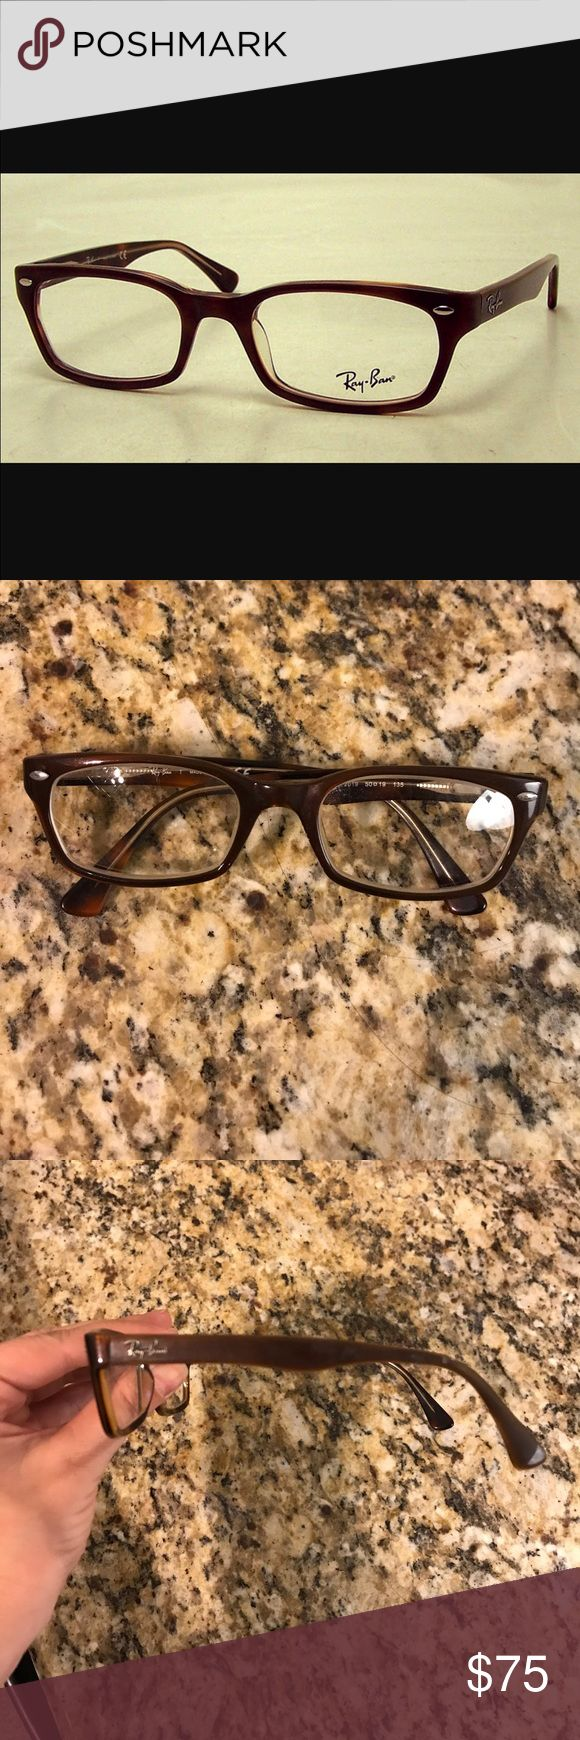 RayBan eyeglasses Rayban eyeglass frames. Brown. These have prescription lenses in them but they can be changed. No case. Used. Ray-Ban Accessories Glasses